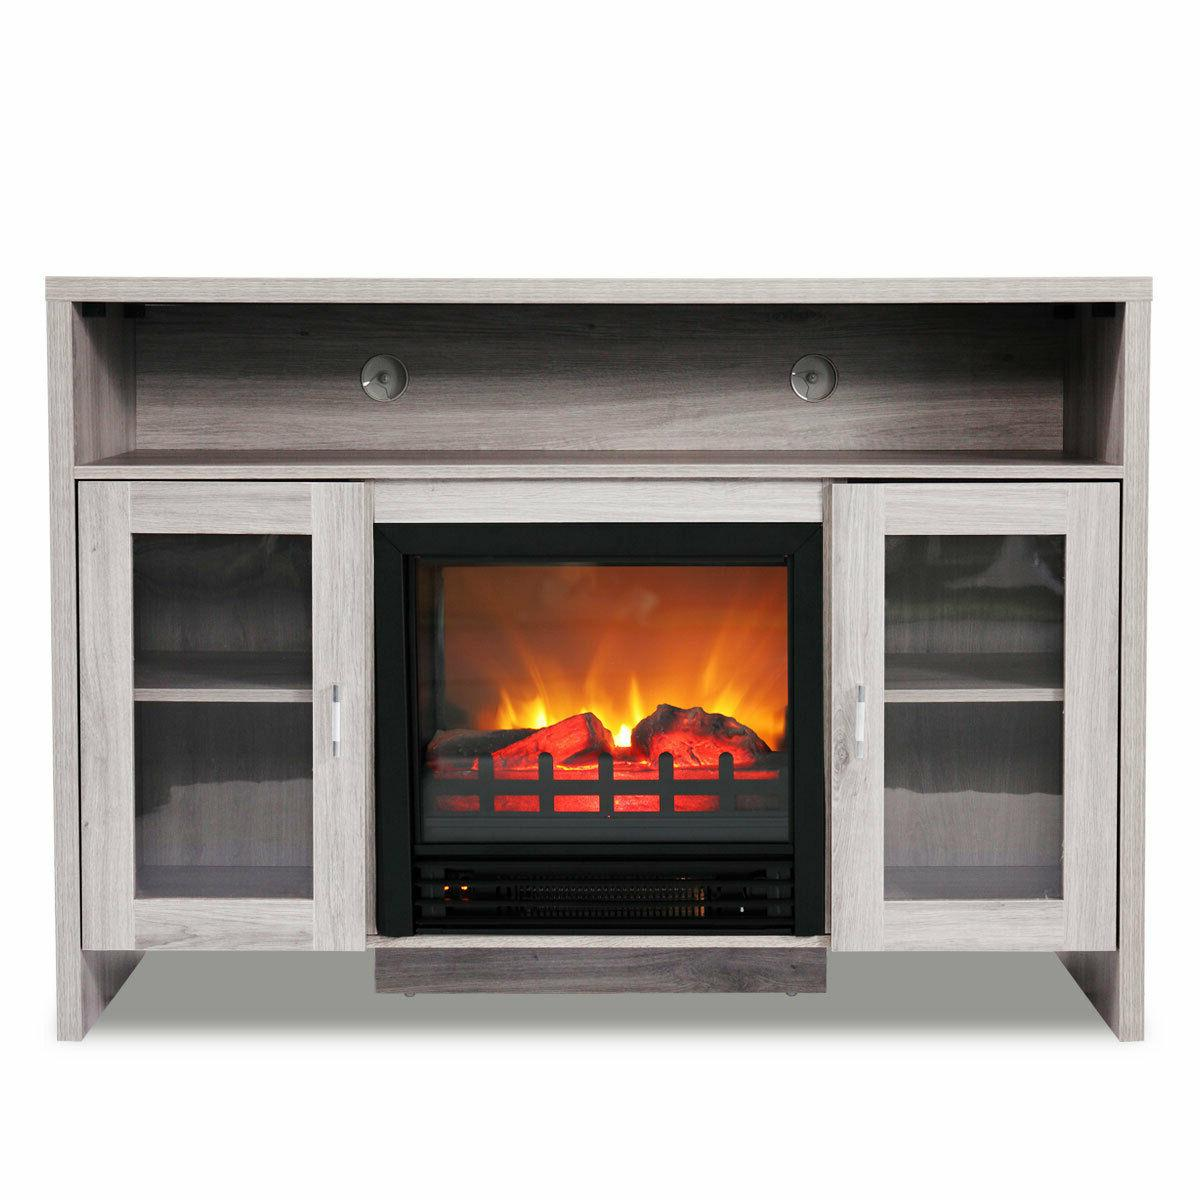 Fireplace TV Wood Storage Media Heater for up to